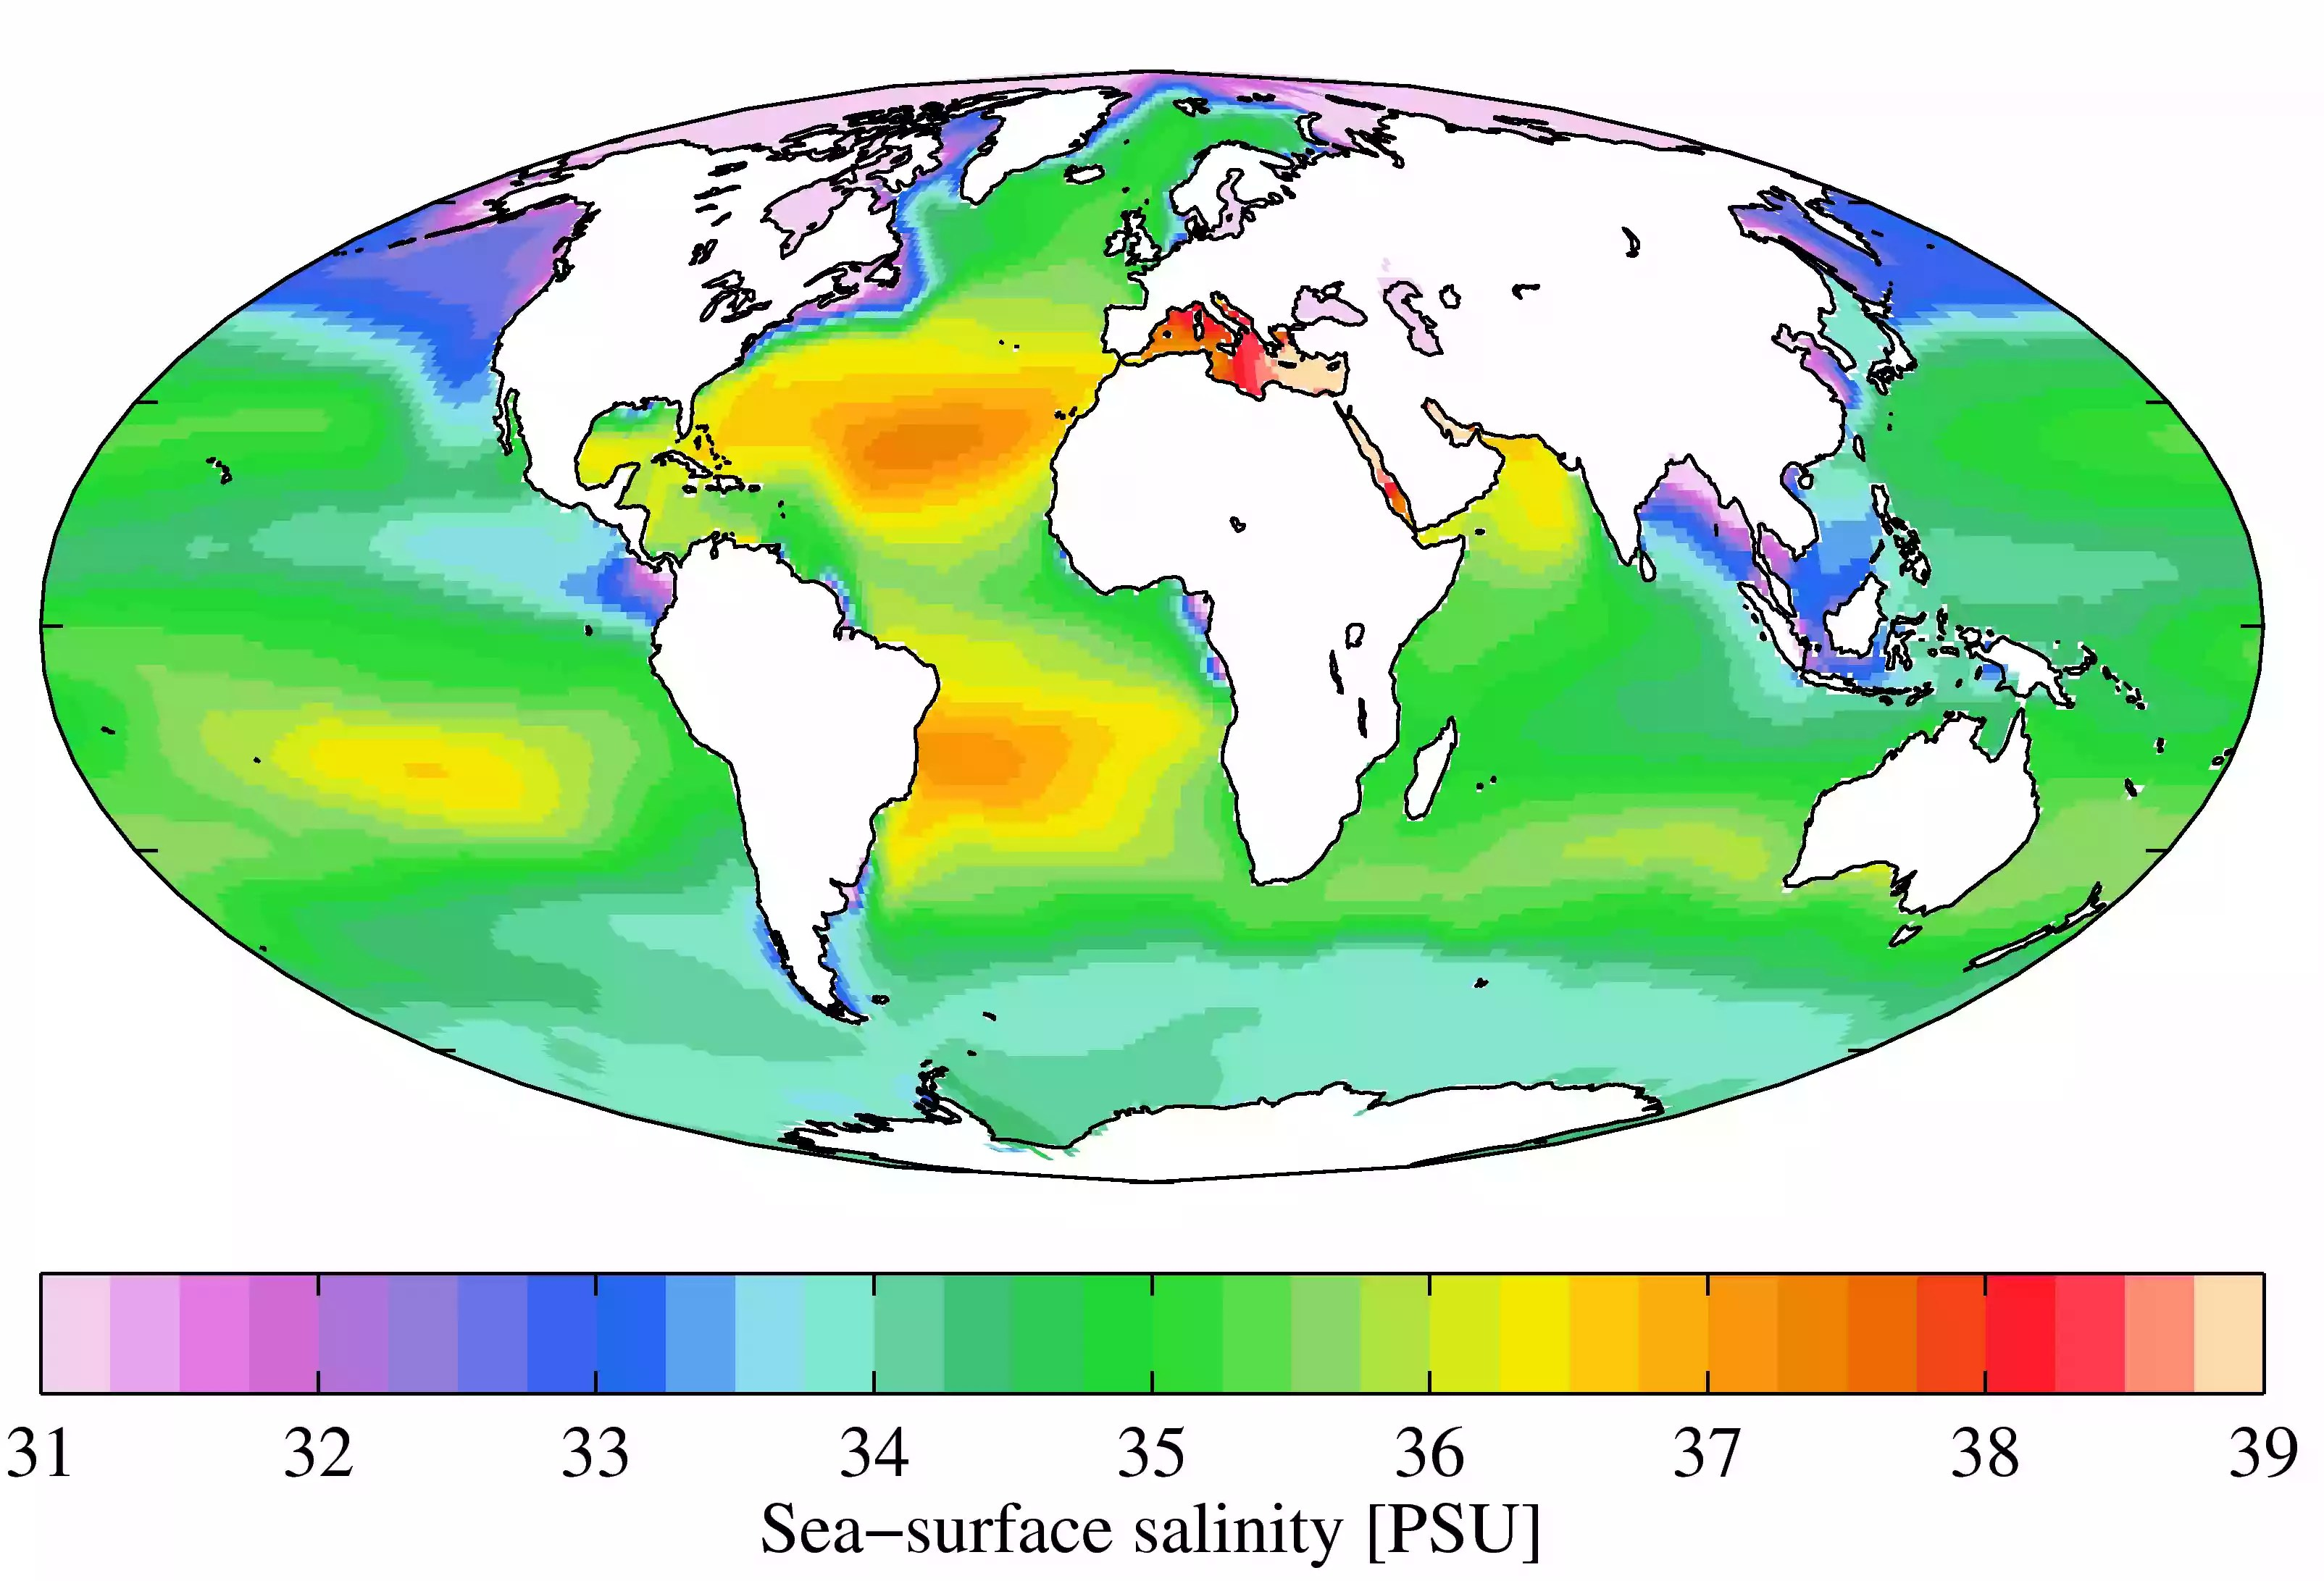 Annual mean sea surface salinity from the 2009 World Ocean Atlas. Salinity is listed in practical salinity units (PSU).